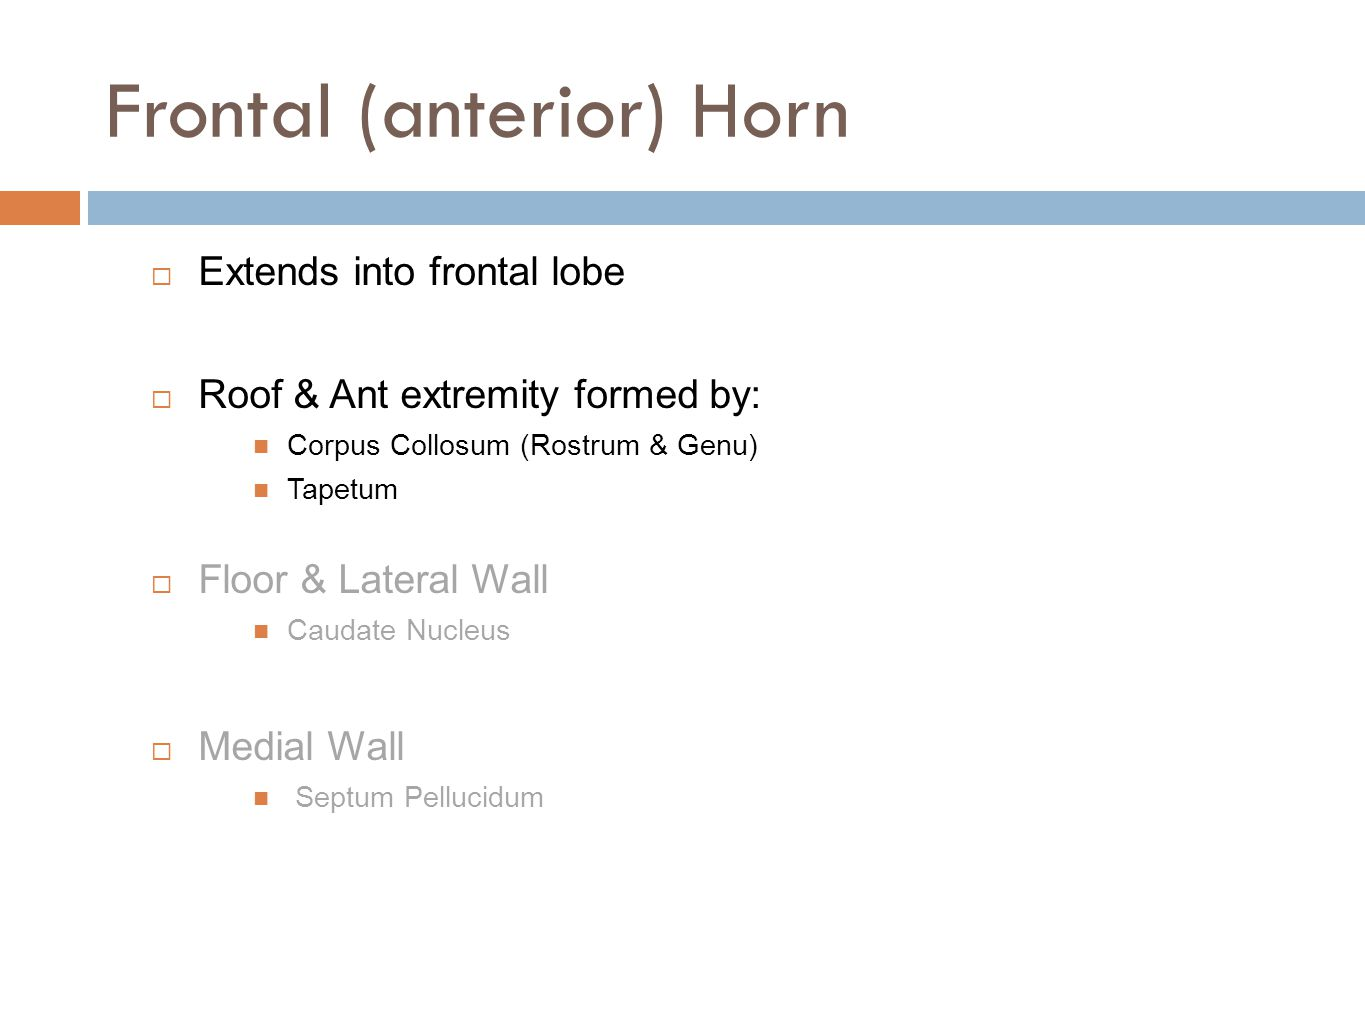 Frontal (anterior) Horn